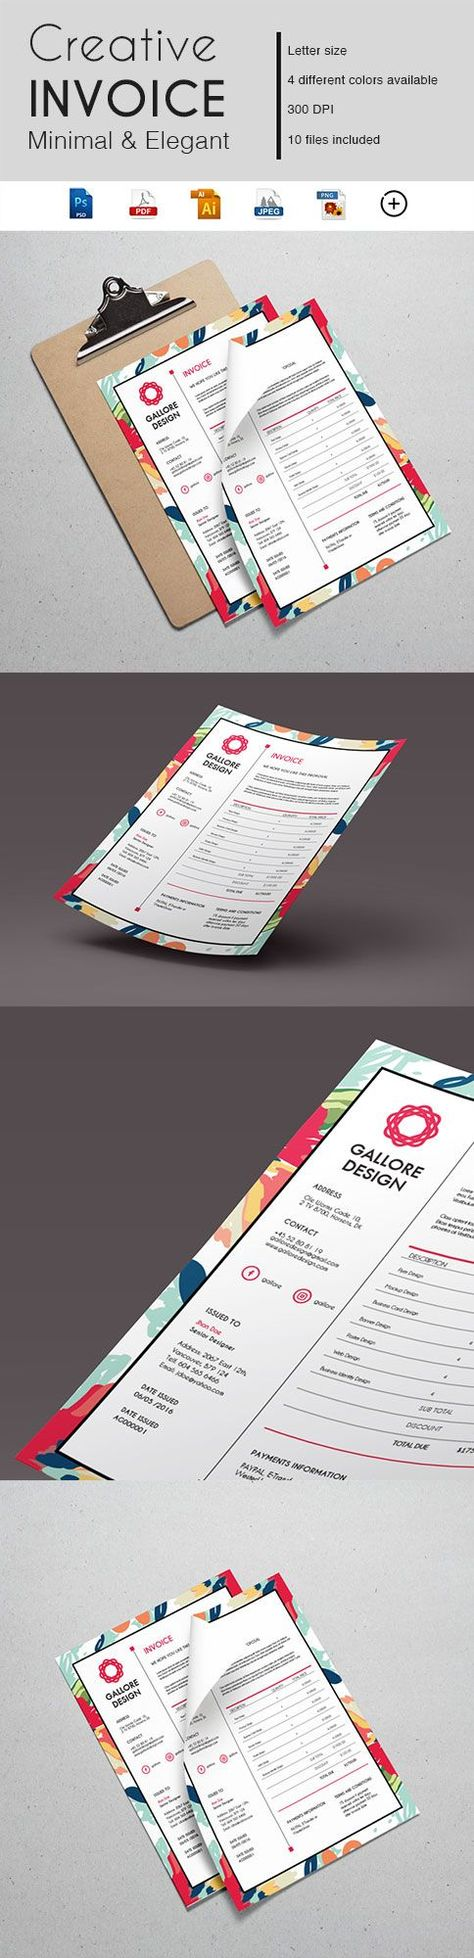 Gabellare   Not every business is the same, so make sure your marketing material leaves the right first impression.  Get in on the action and brand yourself with an amazing business template.